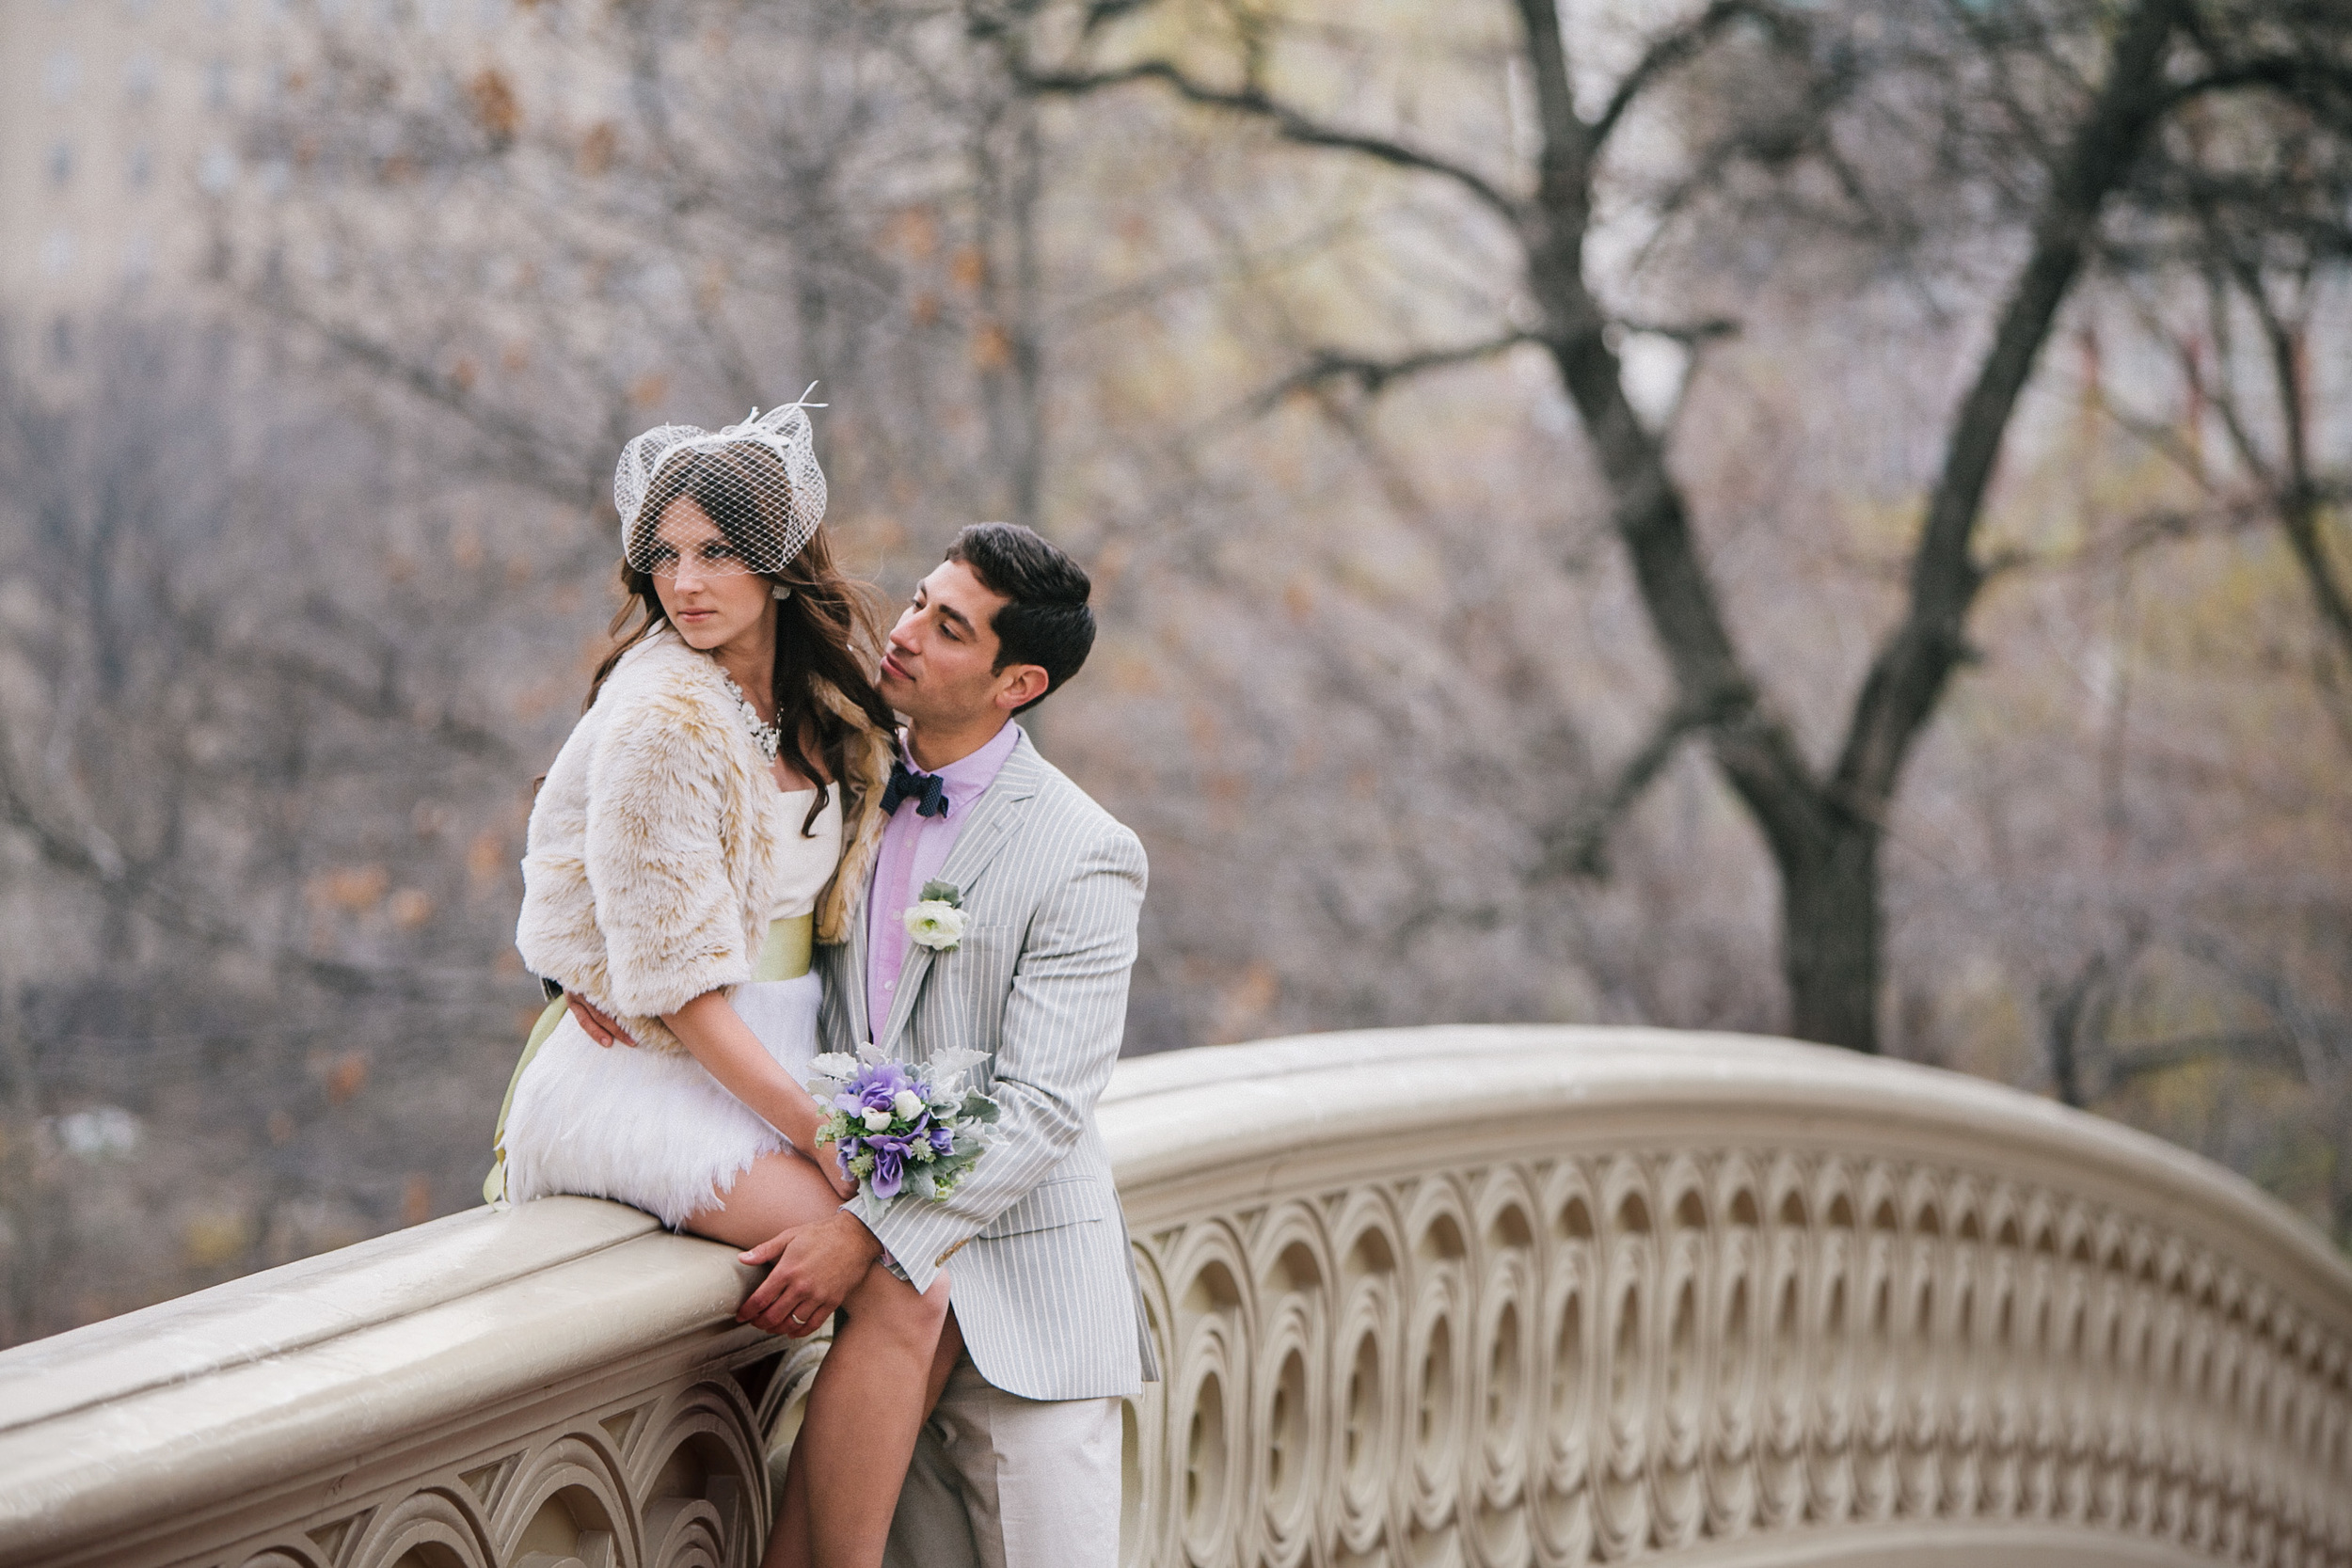 michael-rousseau-photography-new-york-city-wedding-central-park001.jpg